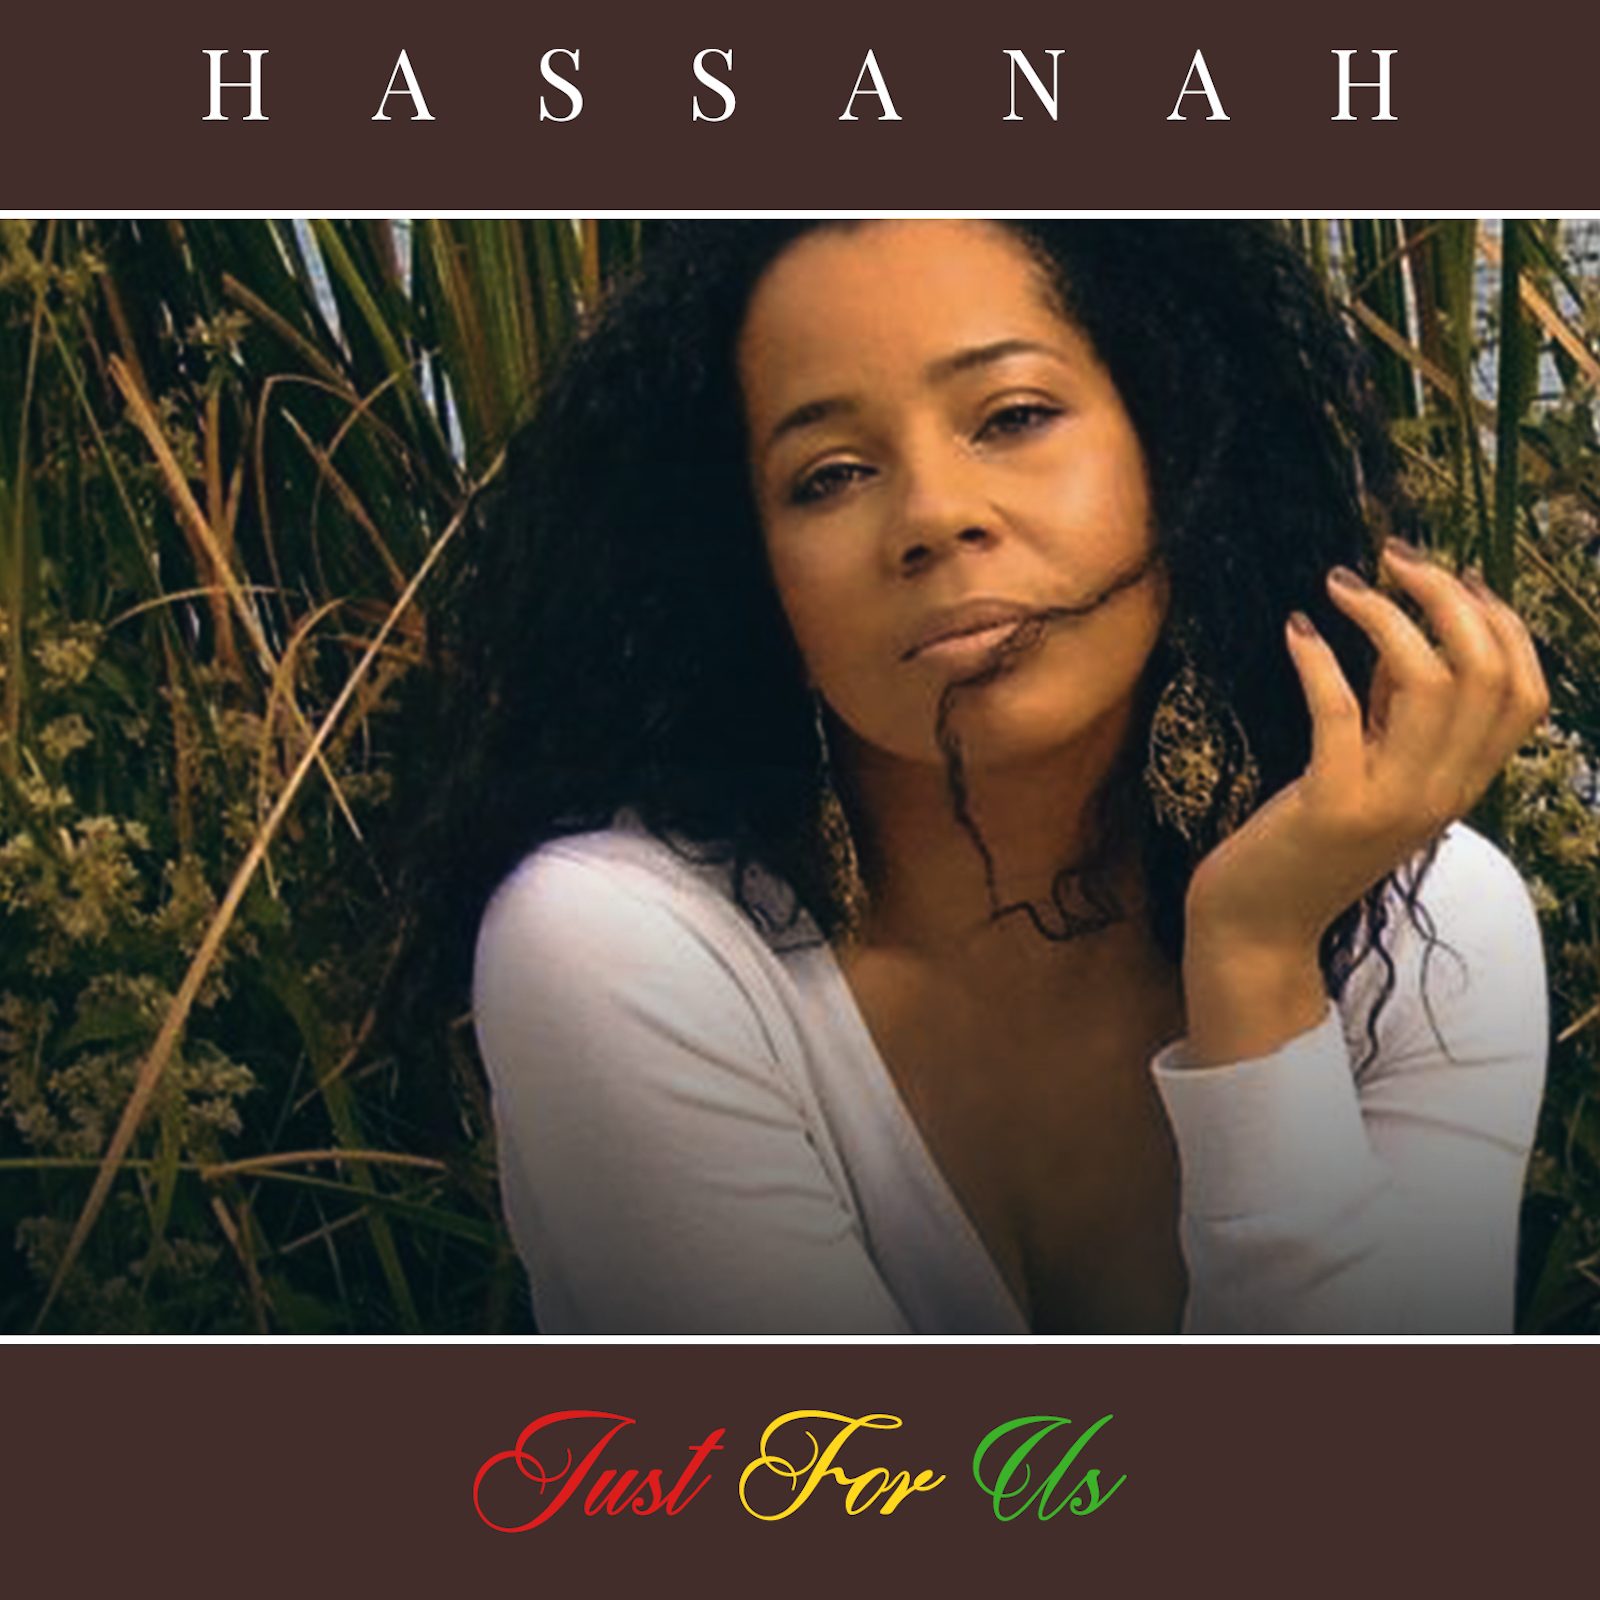 Hassanah - Just For Us